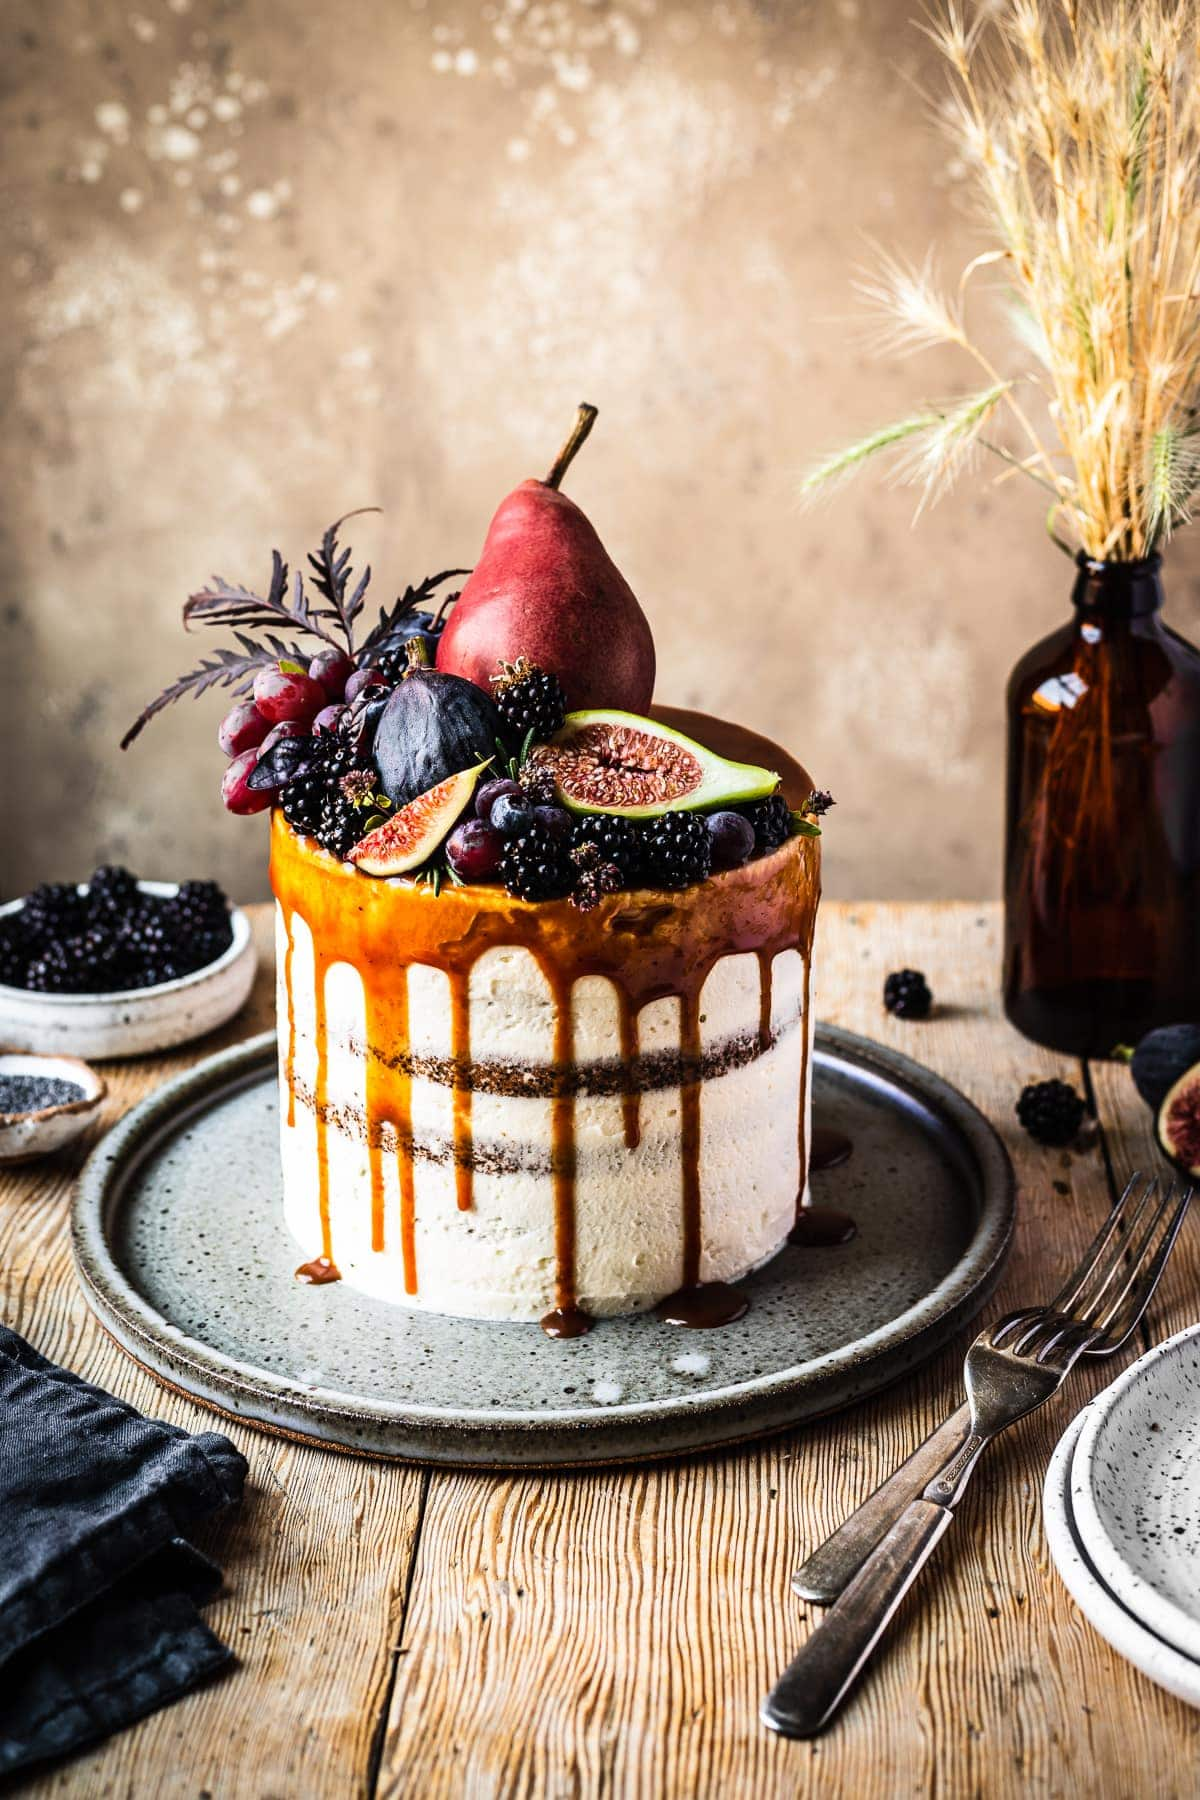 A white frosted cake with a caramel drip and a crown of late summer fruit on top. The cake sits on a blue grey ceramic platter on a rustic wooden table with forks and small bowls of poppy seeds and blackberries nearby. There is a warm tan stone background behind the table.